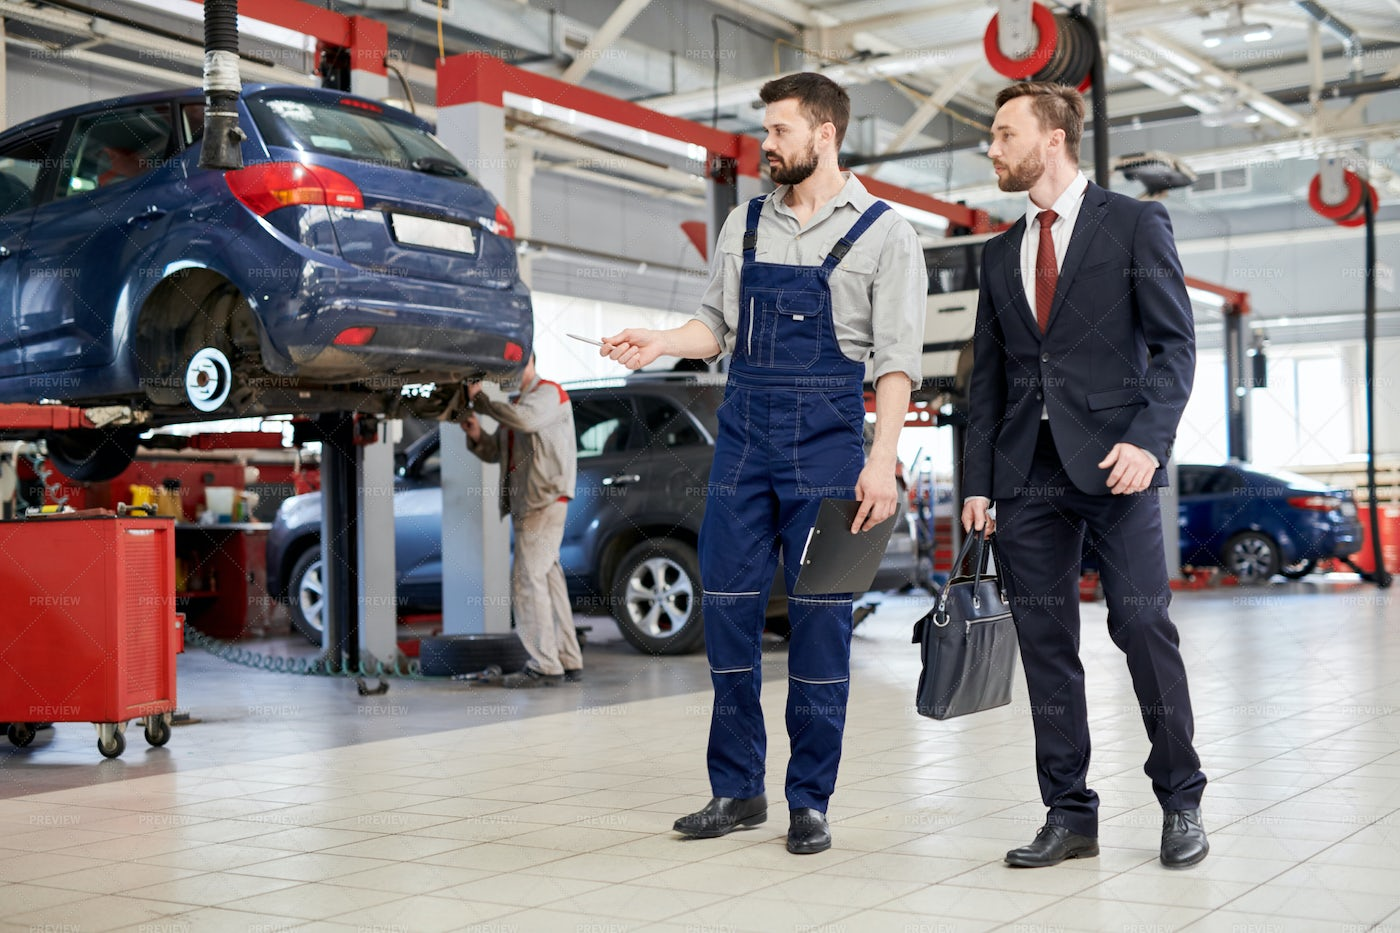 Worker Giving Tour Of Car Factory: Stock Photos